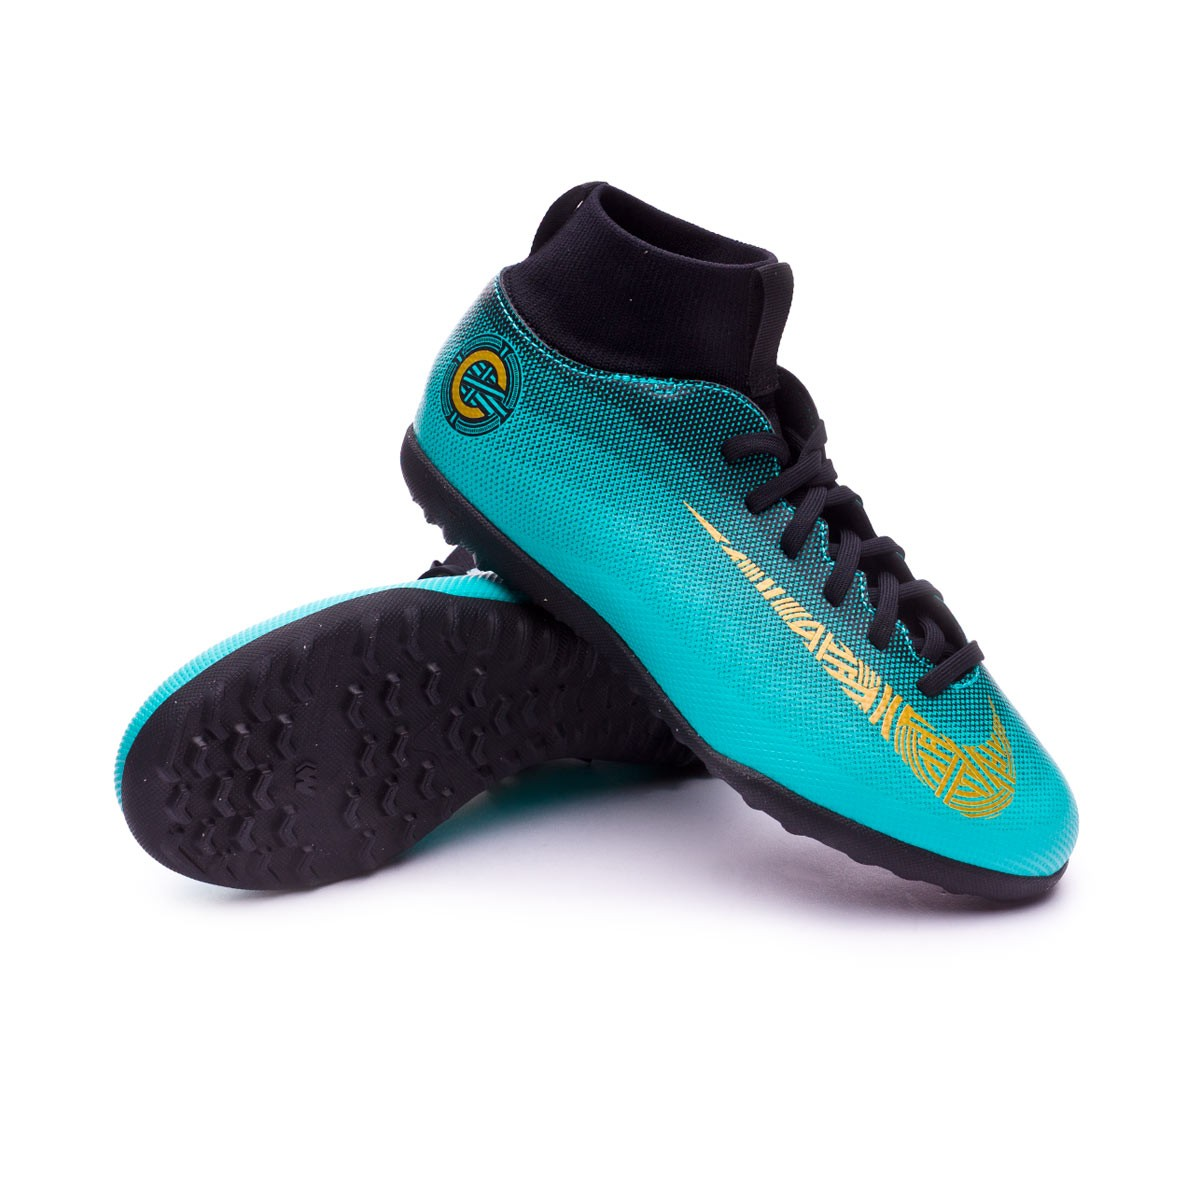 timeless design e2f72 7f8c2 Football Boot Nike Kids Mercurial SuperflyX VI Club CR7 Turf Clear  jade-Metallic vivid gold-Black - Tienda de fútbol Fútbol Emotion